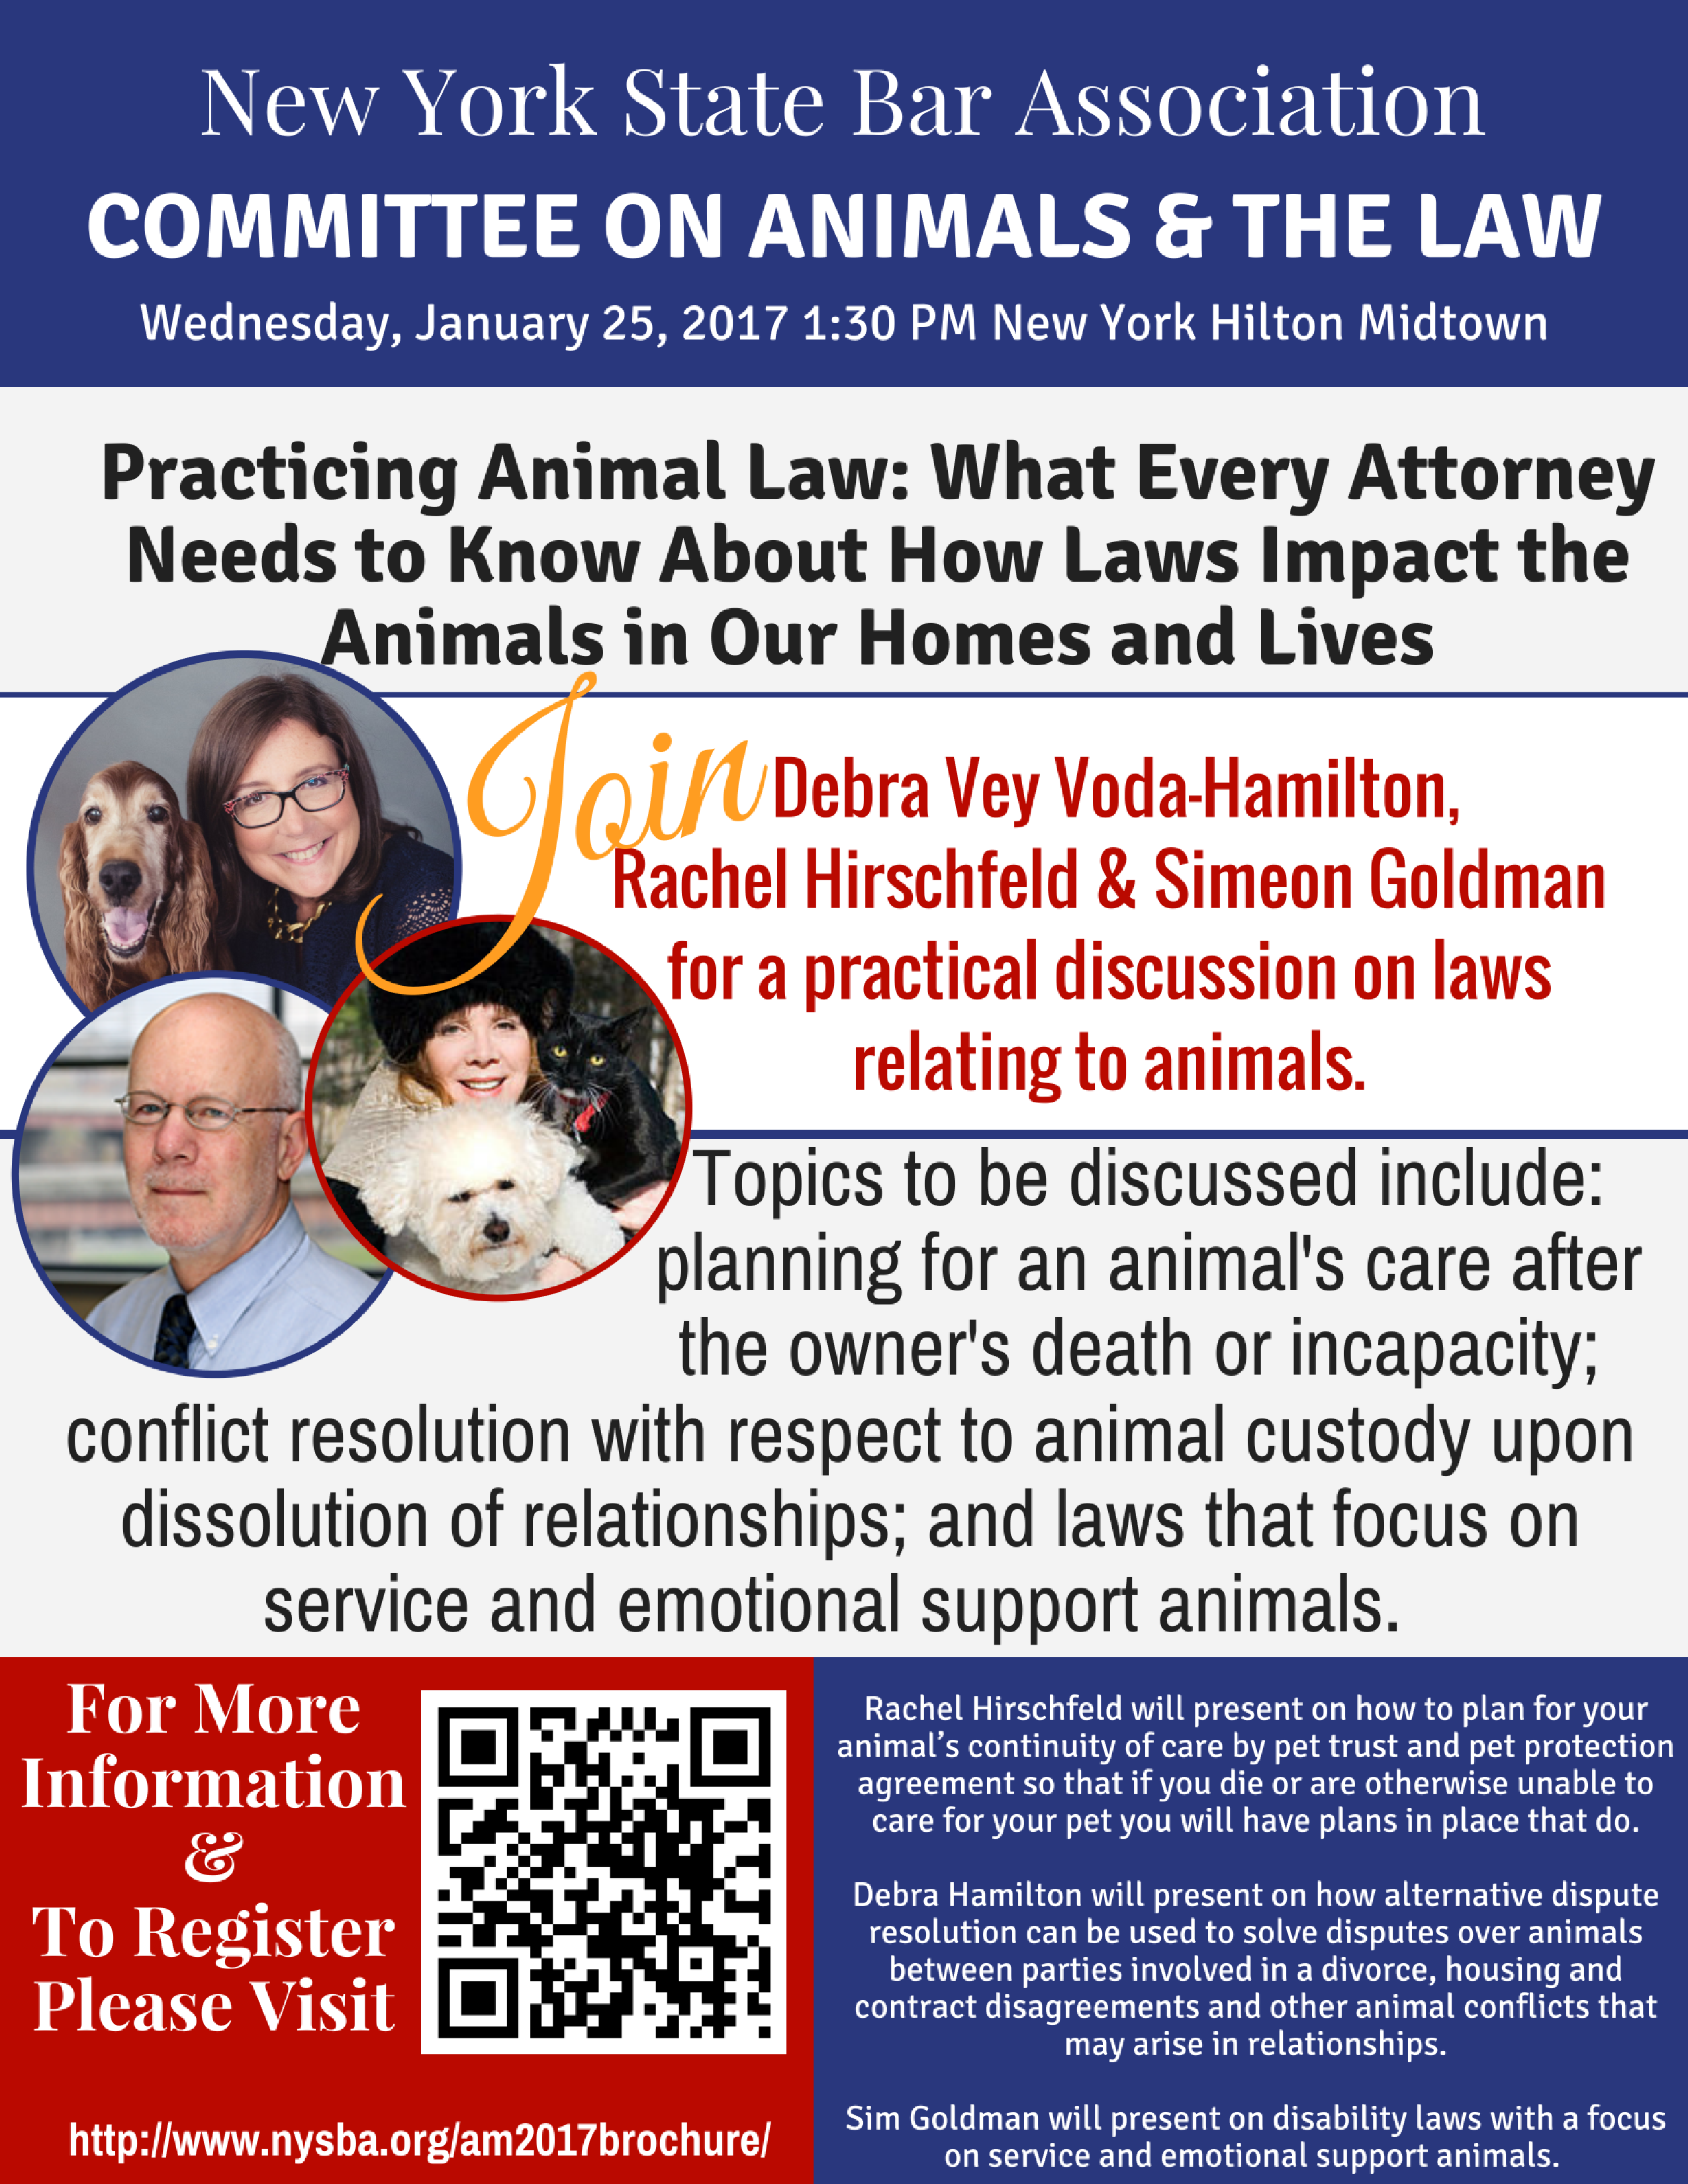 Practicing Animal Law: What Every Attorney Needs to Know About How Laws Impact the Animals in Our Homes and Lives, NYSBA, NYSBA 2017, Debra Vey Voda-Hamilton, Rachel Hirschfeld, Sim Goldman. Animal Law, Animal Custody, Animal Mediation,